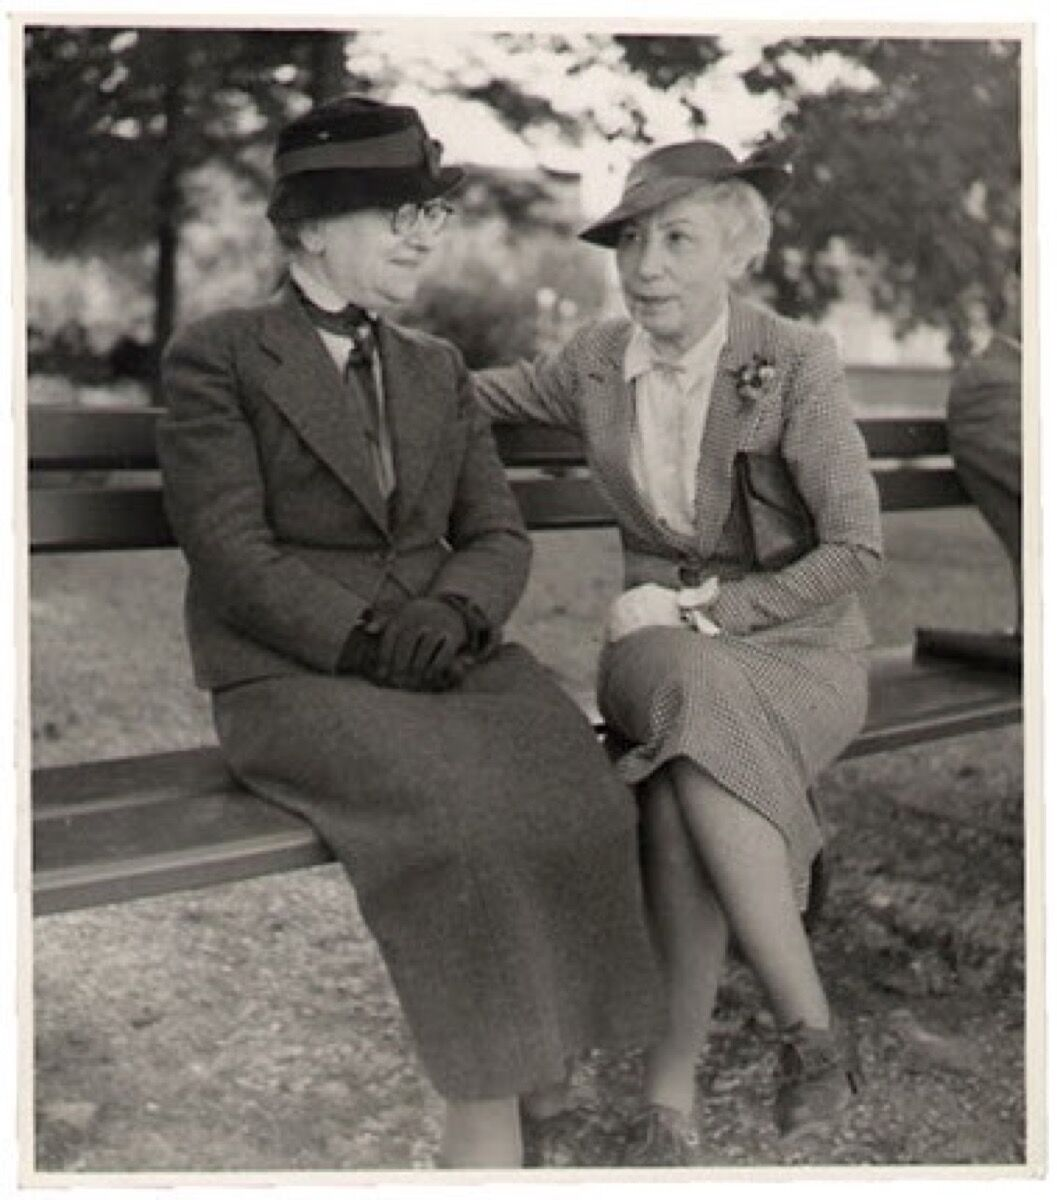 Berthe Weill and a friend, from the Berthe Weill Archive. Courtesy of Marianne Le Morvan.